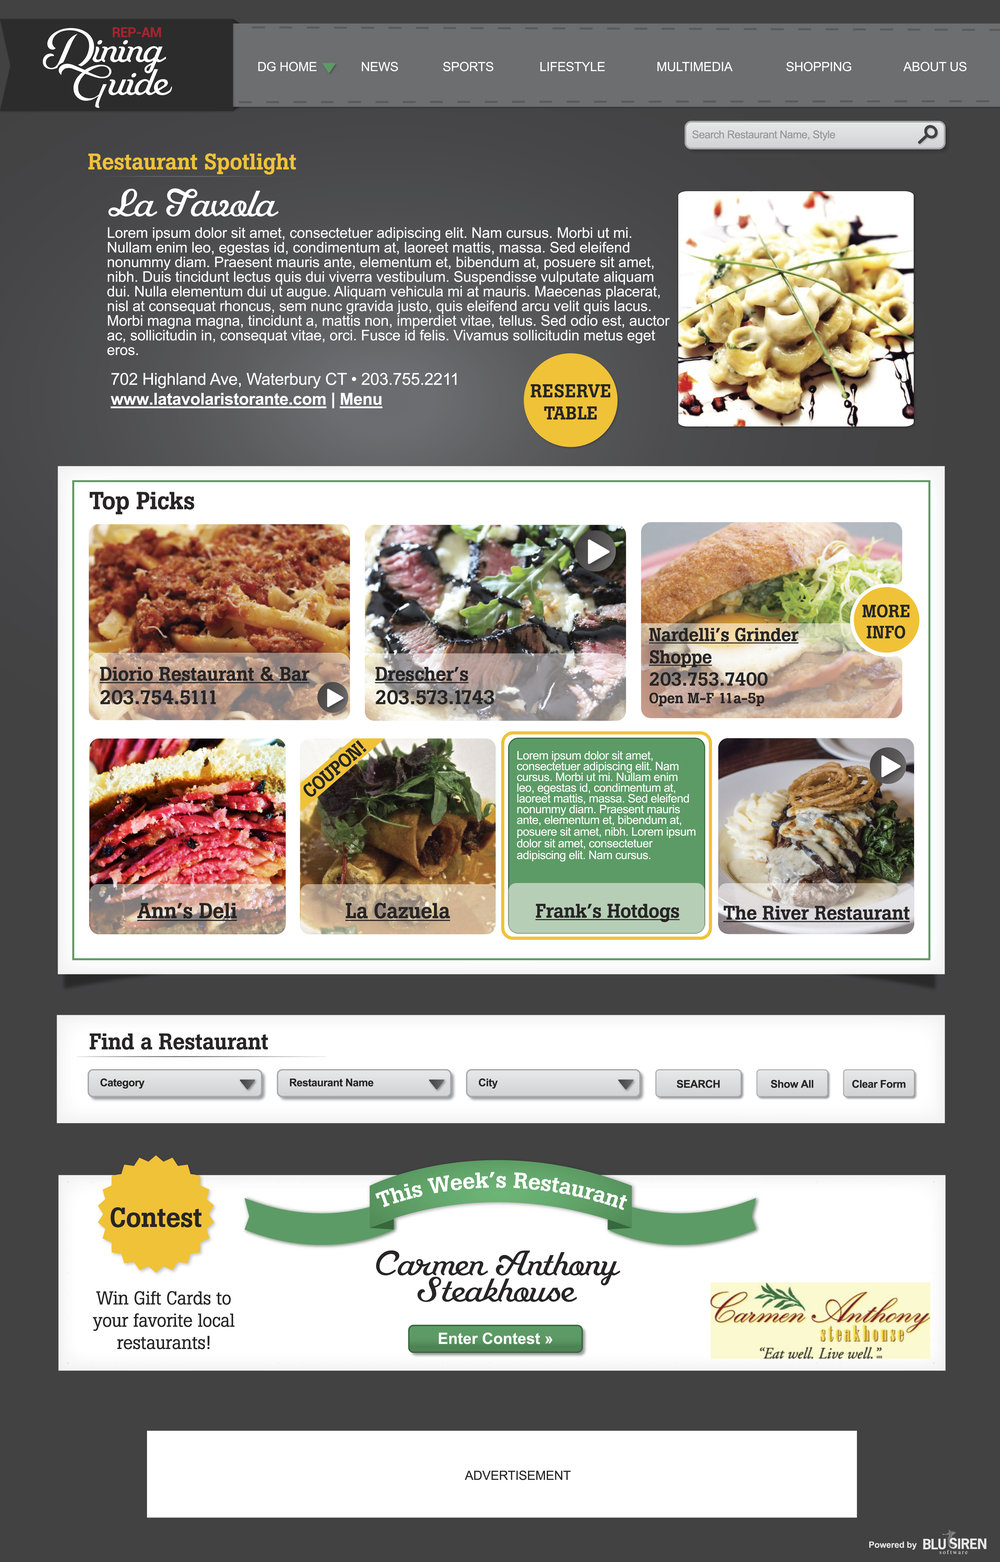 Newspaper Restaurant Guide Logo + Website Redesign